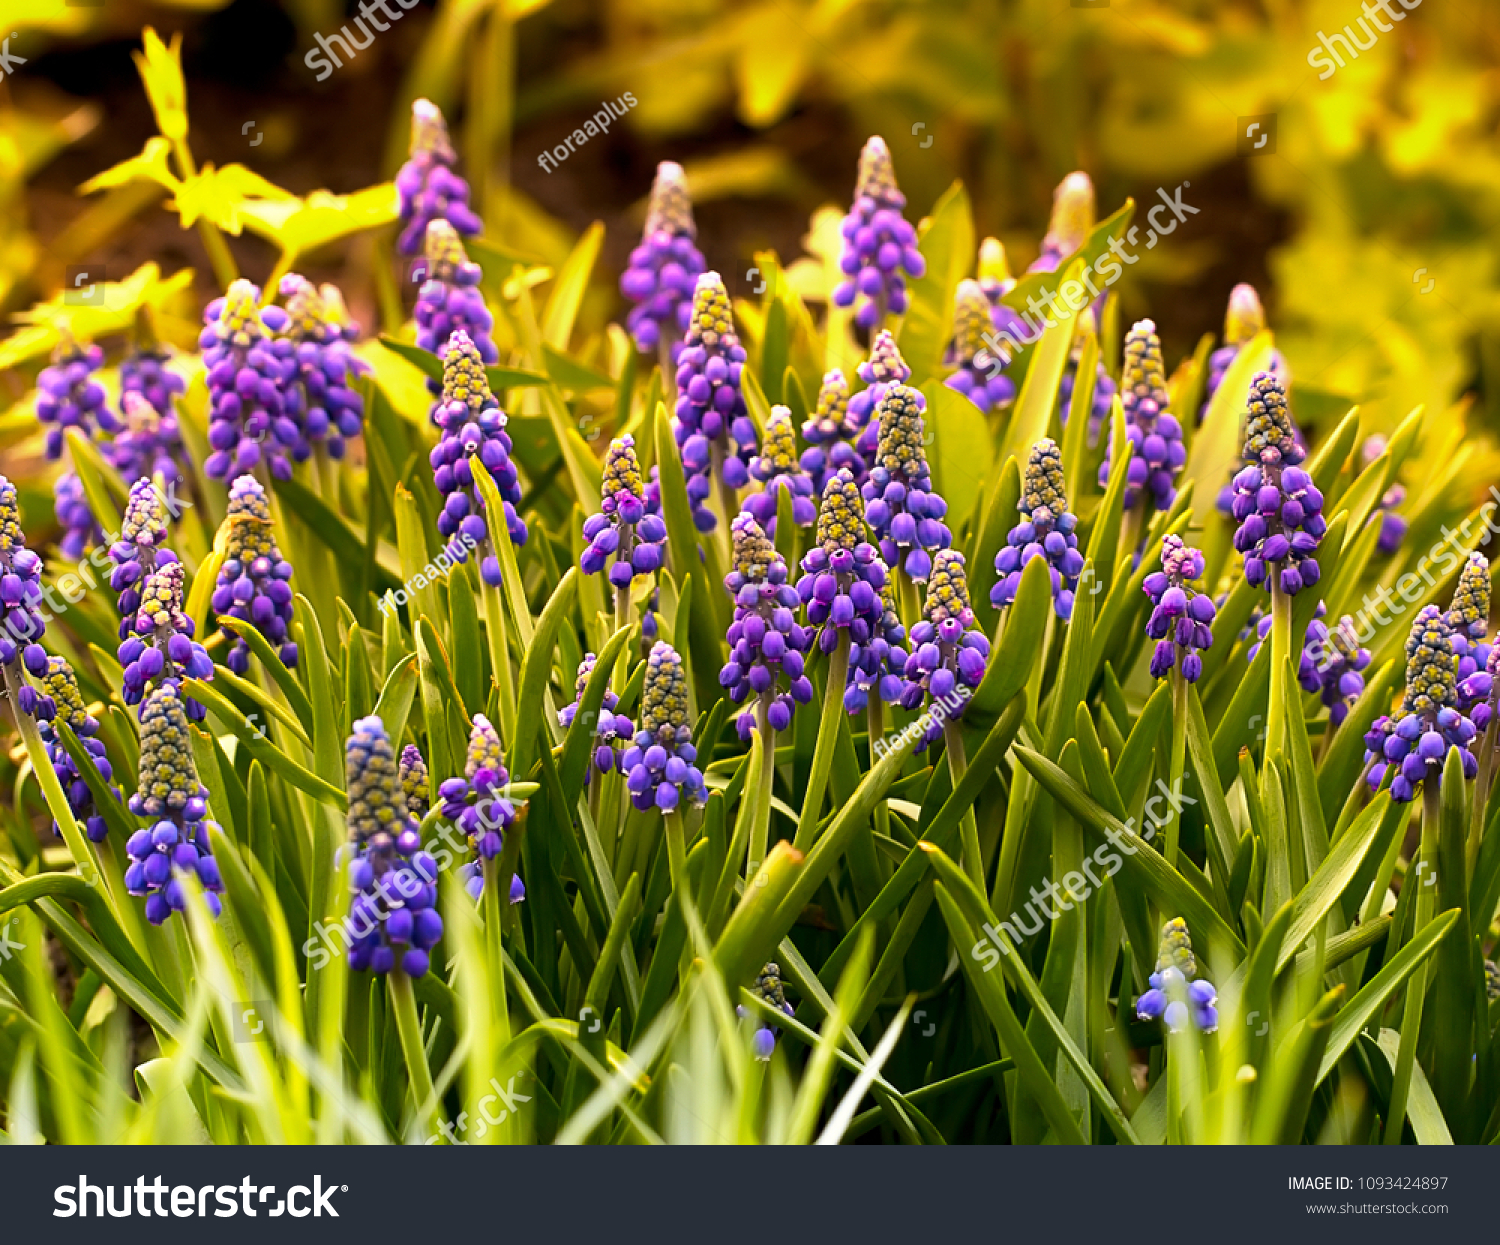 https://image.shutterstock.com/z/stock-photo-blue-muskari-magnificent-blossoming-against-the-background-of-a-garden-thickets-of-a-mouse-1093424897.jpg